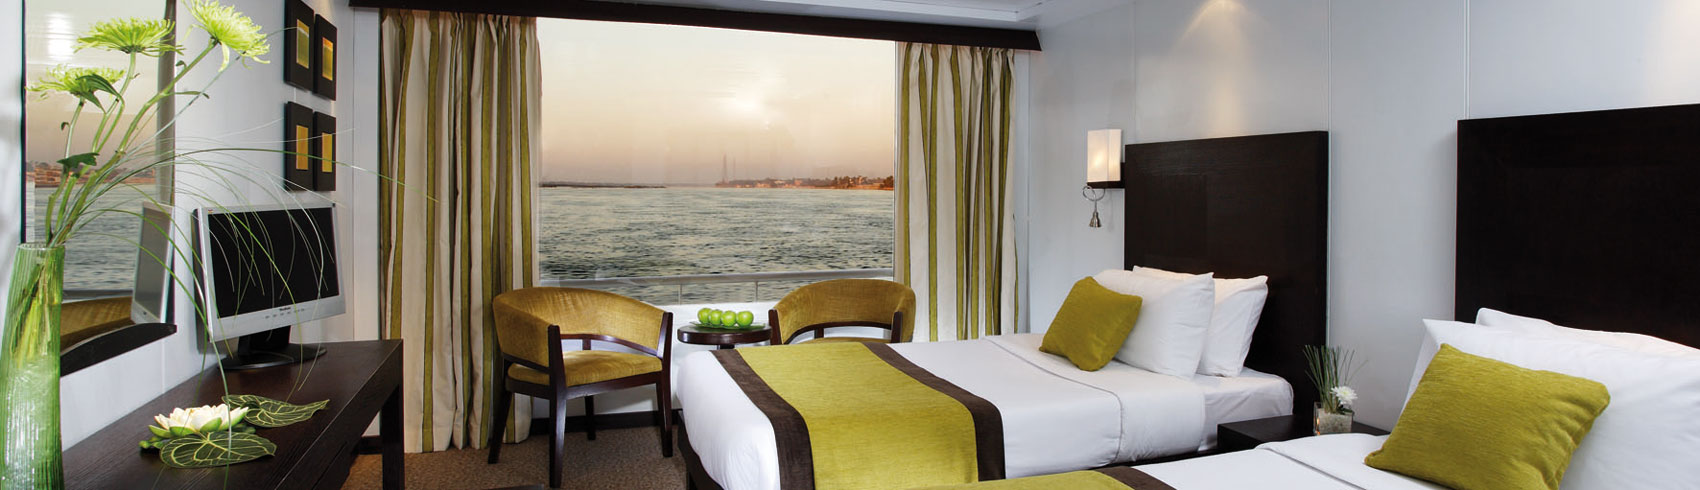 Movenpick Royal Lily Nile Cruise Luxor And Aswan Travel